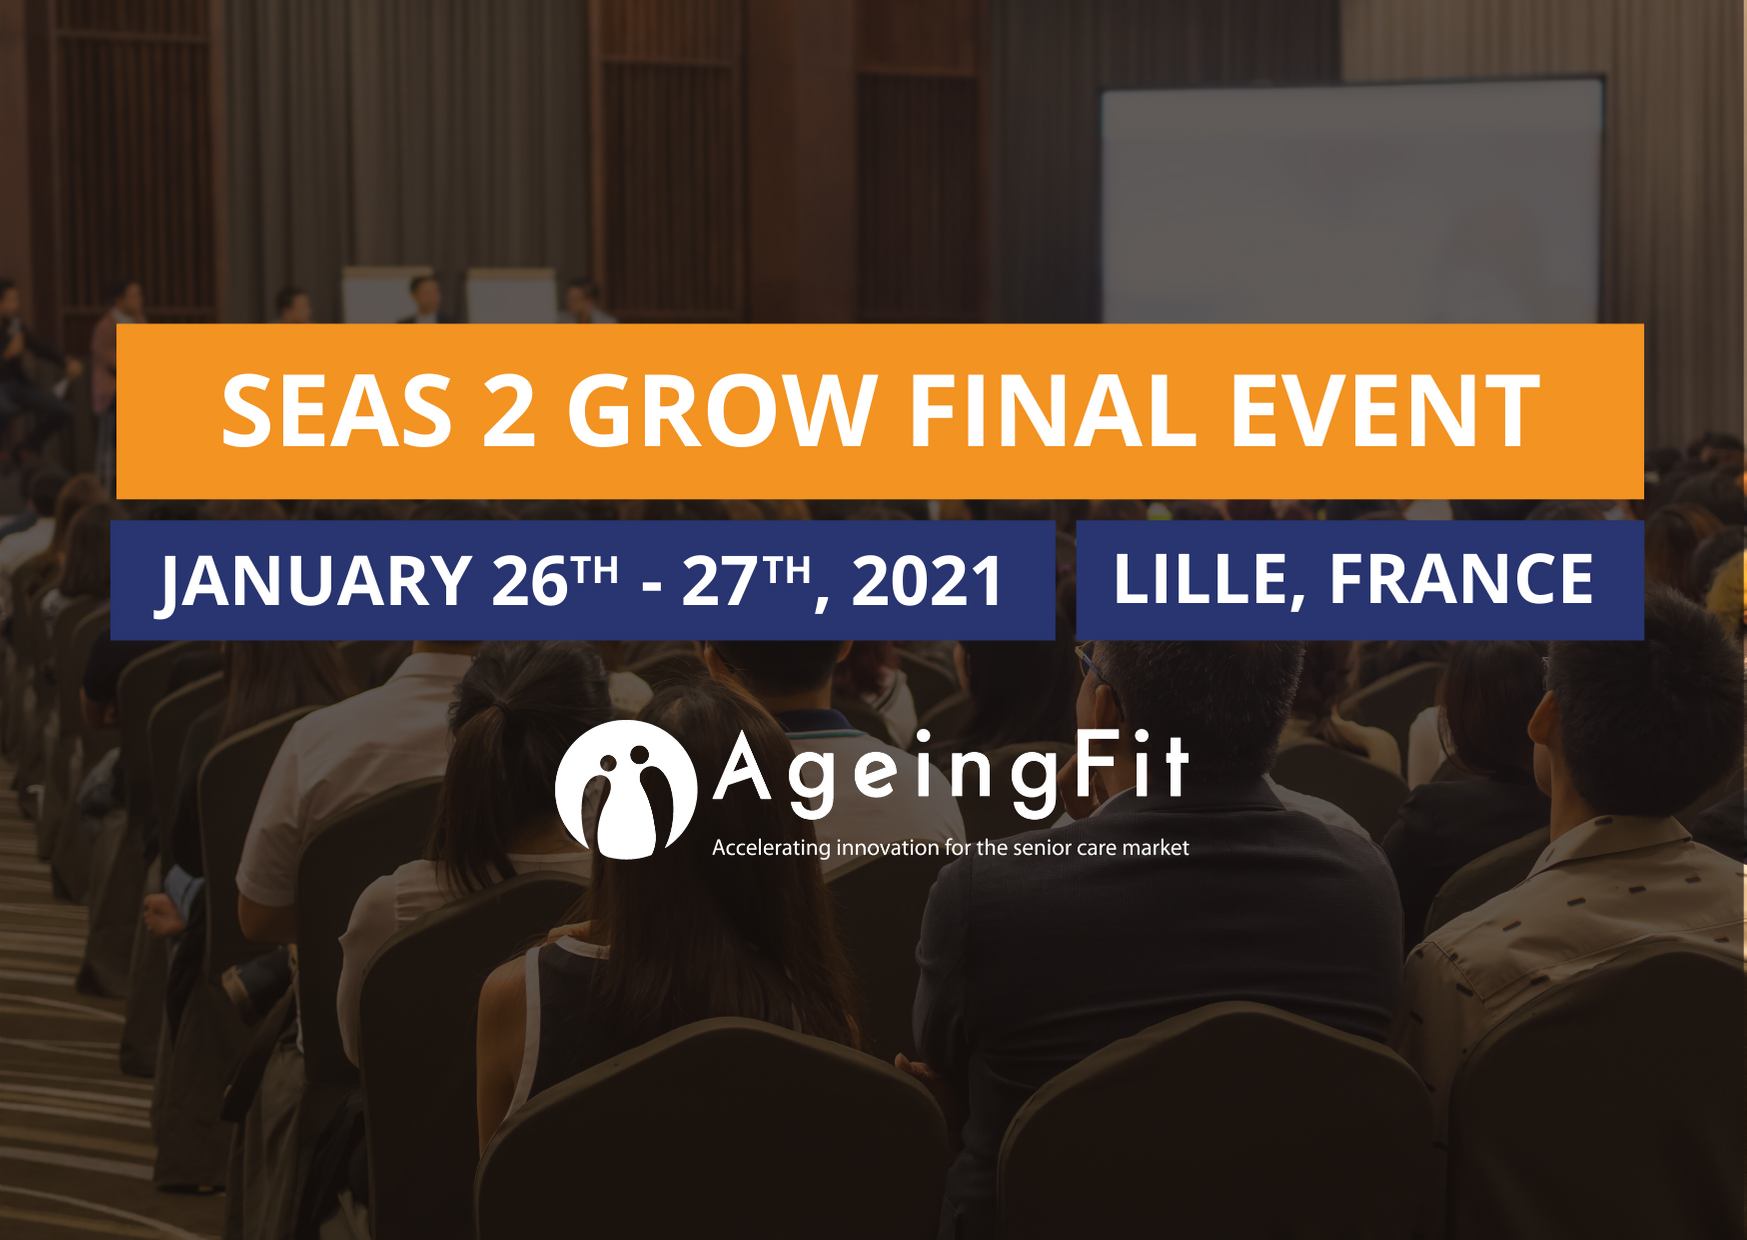 Join us for the SEAS 2 Grow final event on January 26-27, 2021 in Lille!